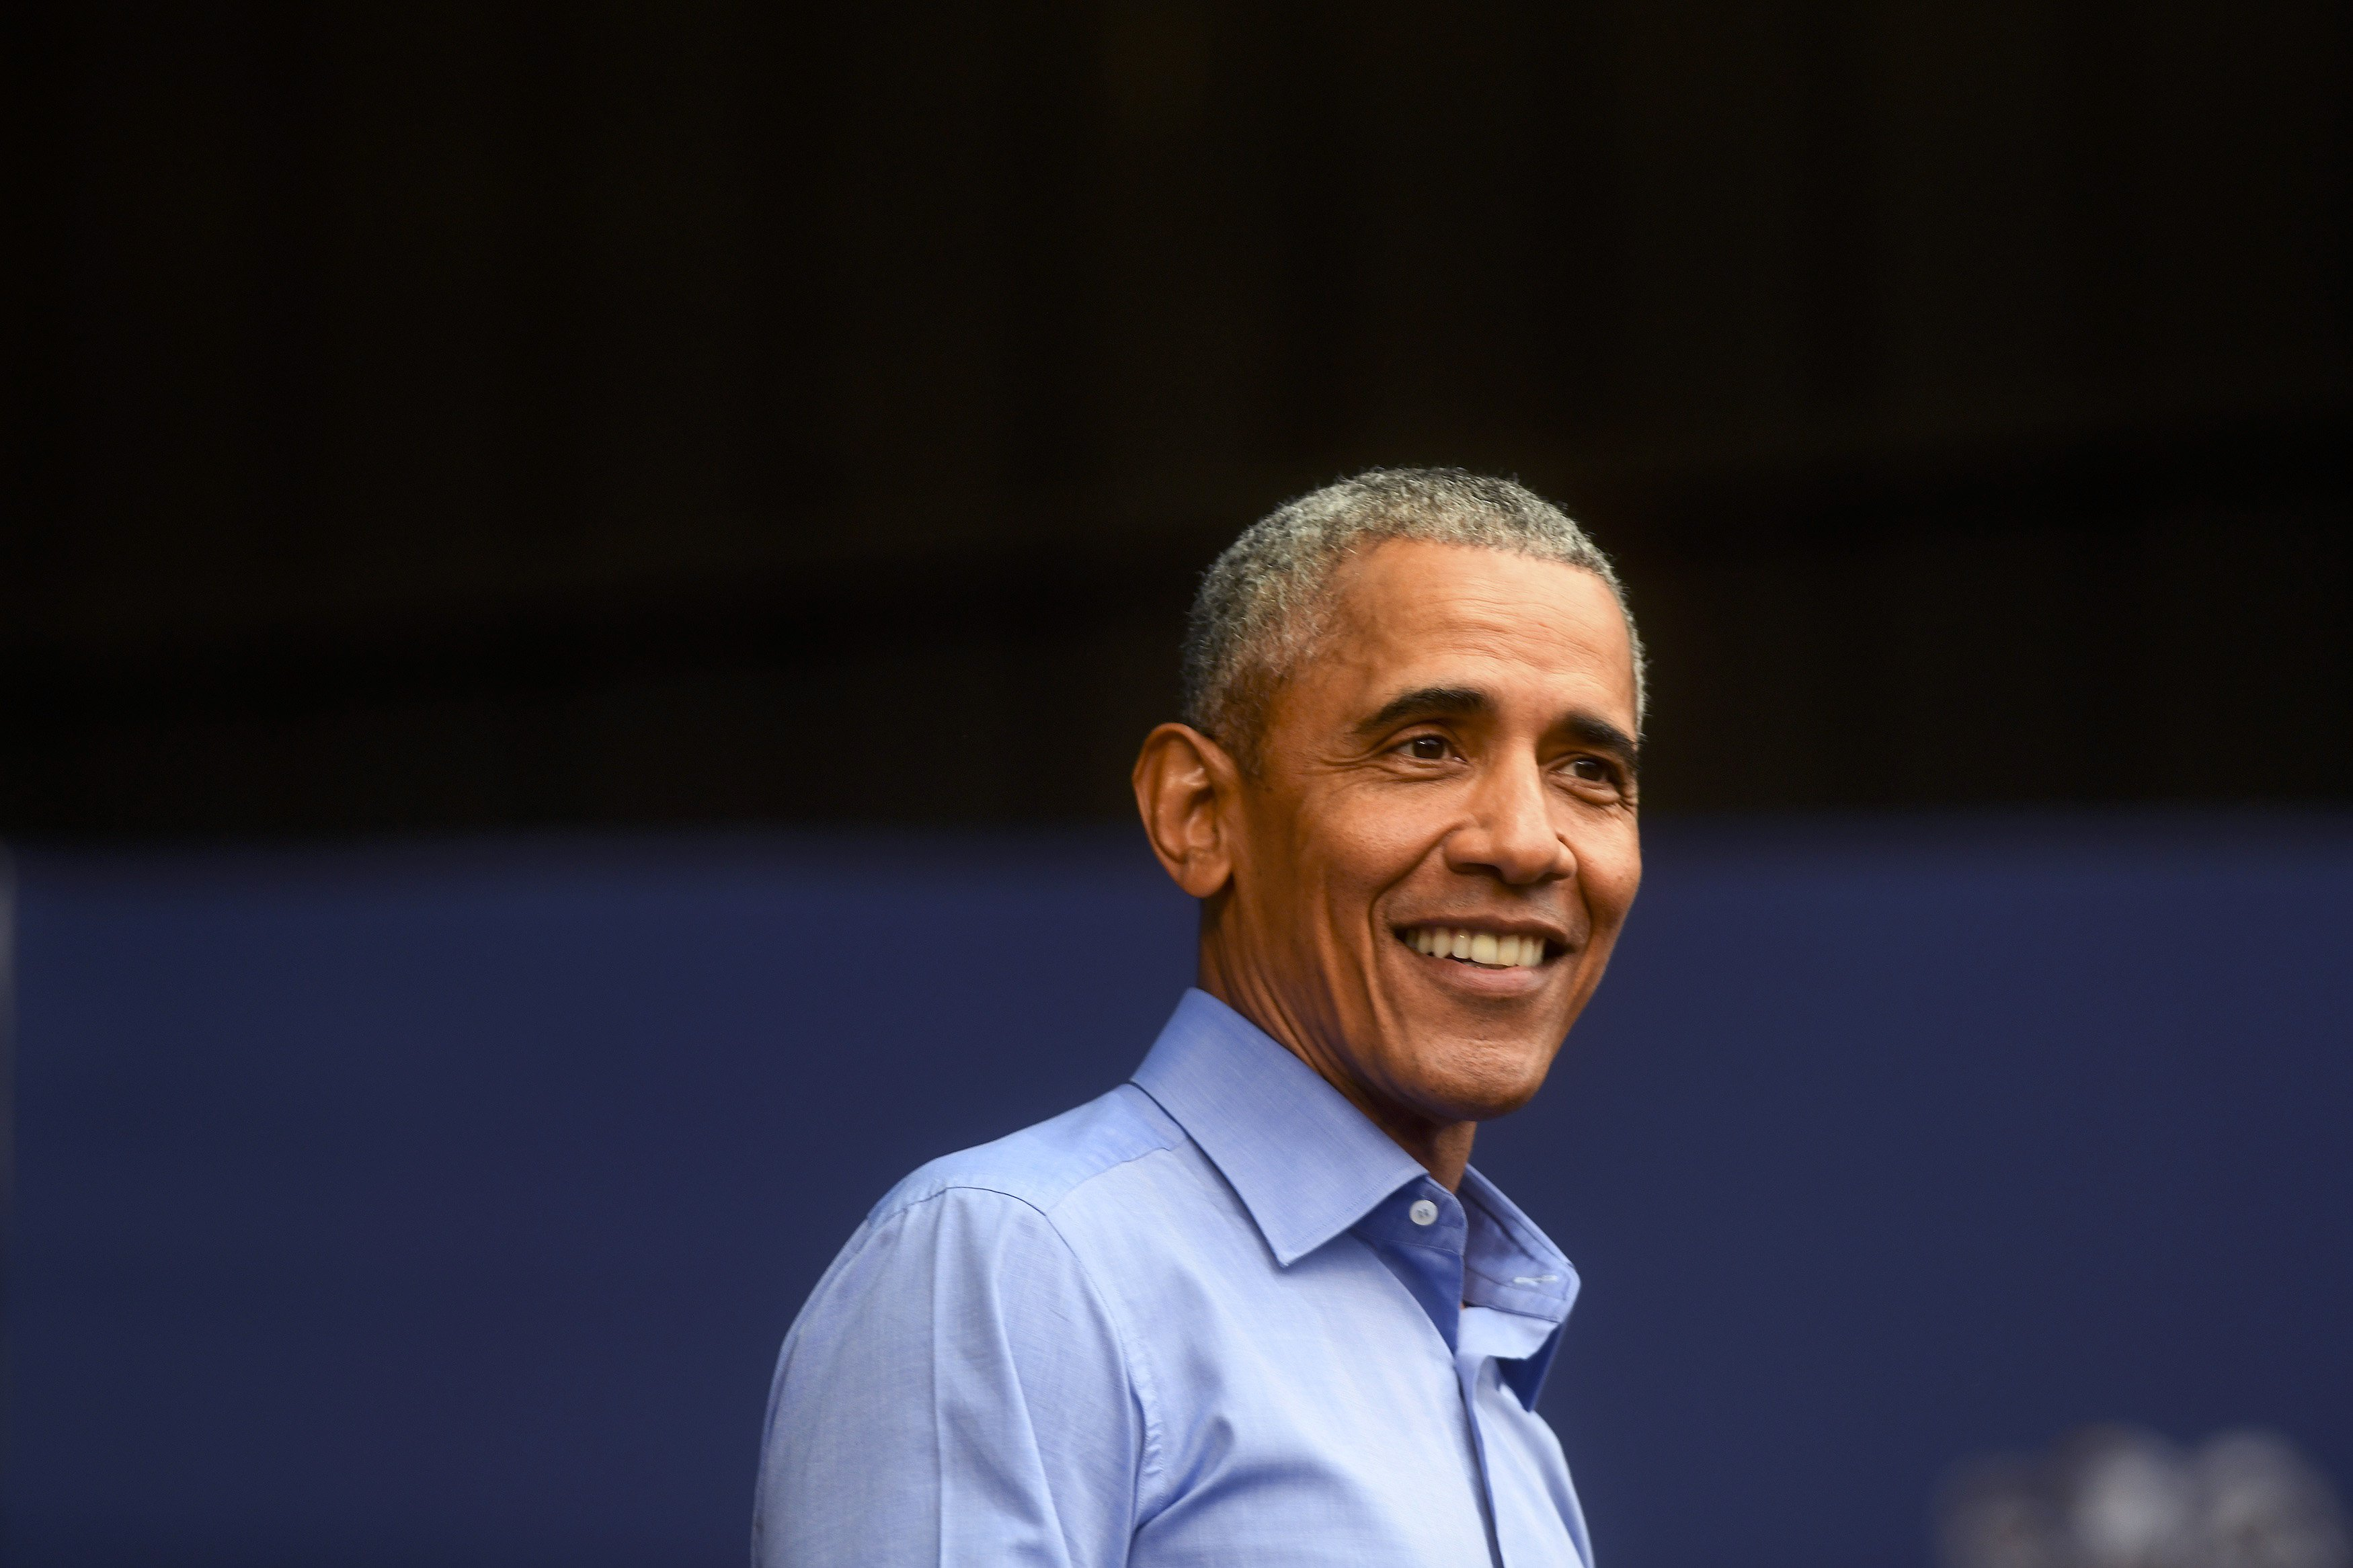 Barack Obama speaks during a campaign rally for Senator Bob Casey (D-PA) and Pennsylvania Governor Tom Wolf on September 21, 2018.   Photo: GettyImages